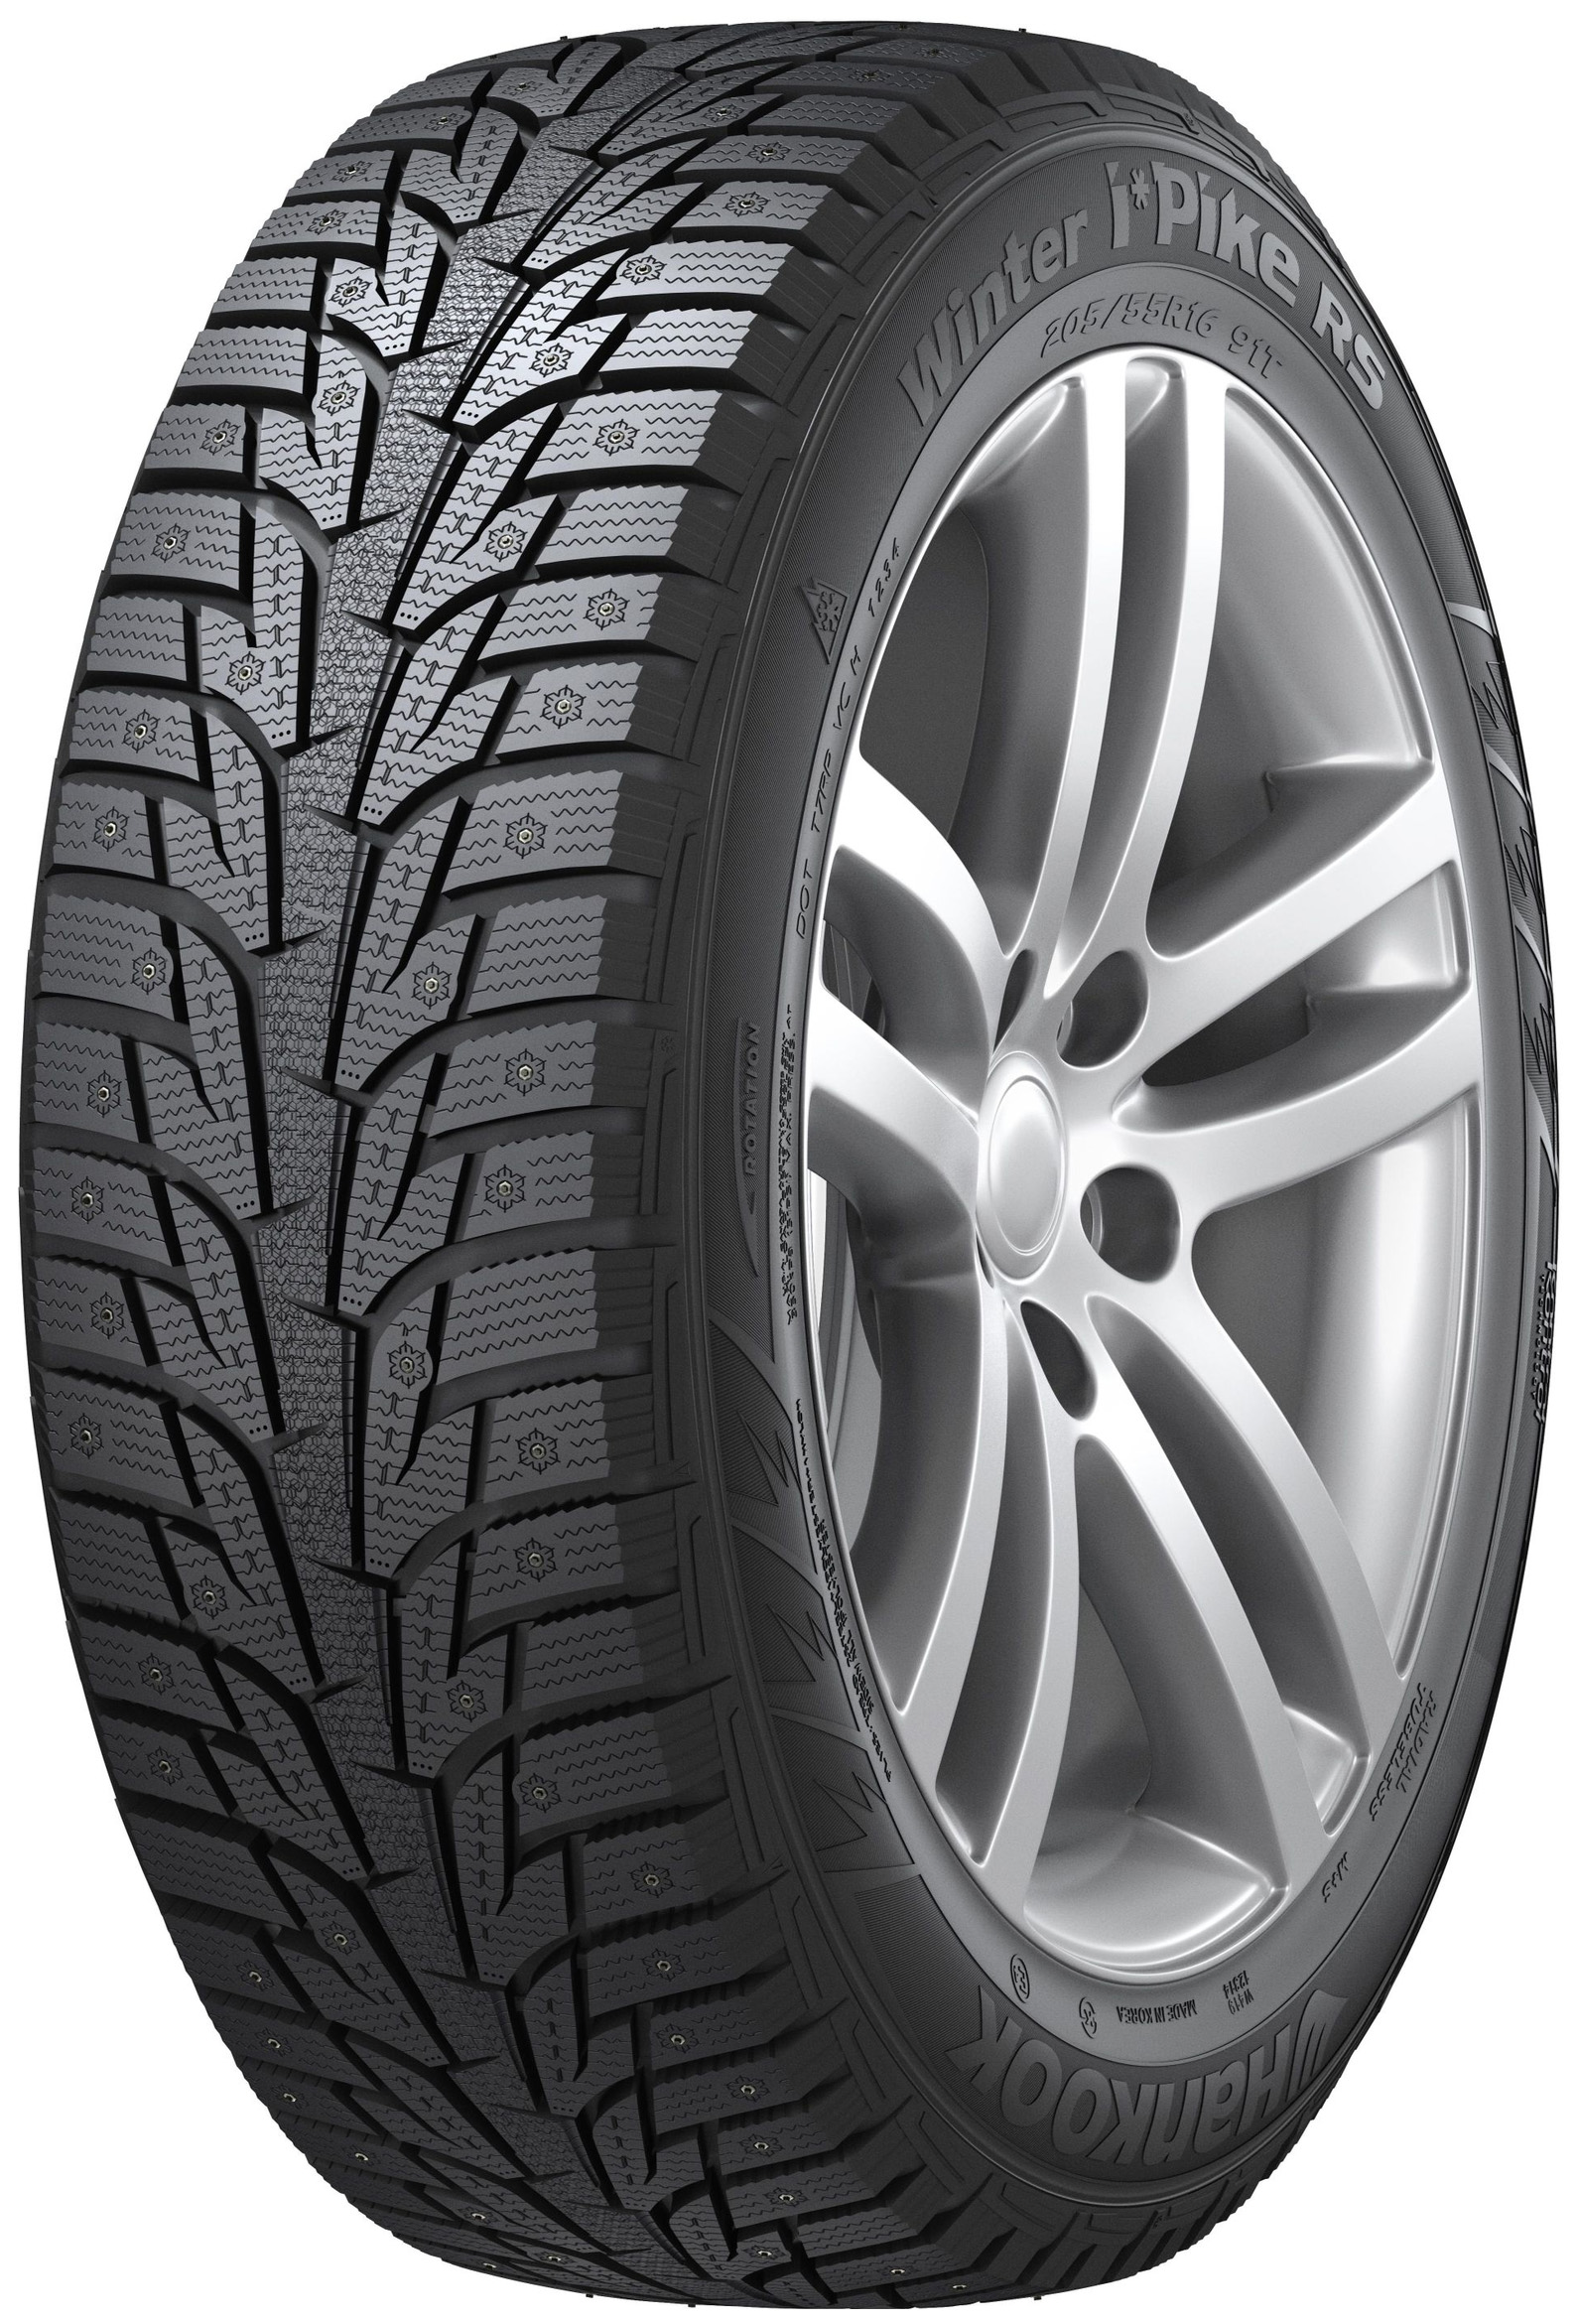 Тест Hankook Tire Winter i*Pike RS2 W429 фото